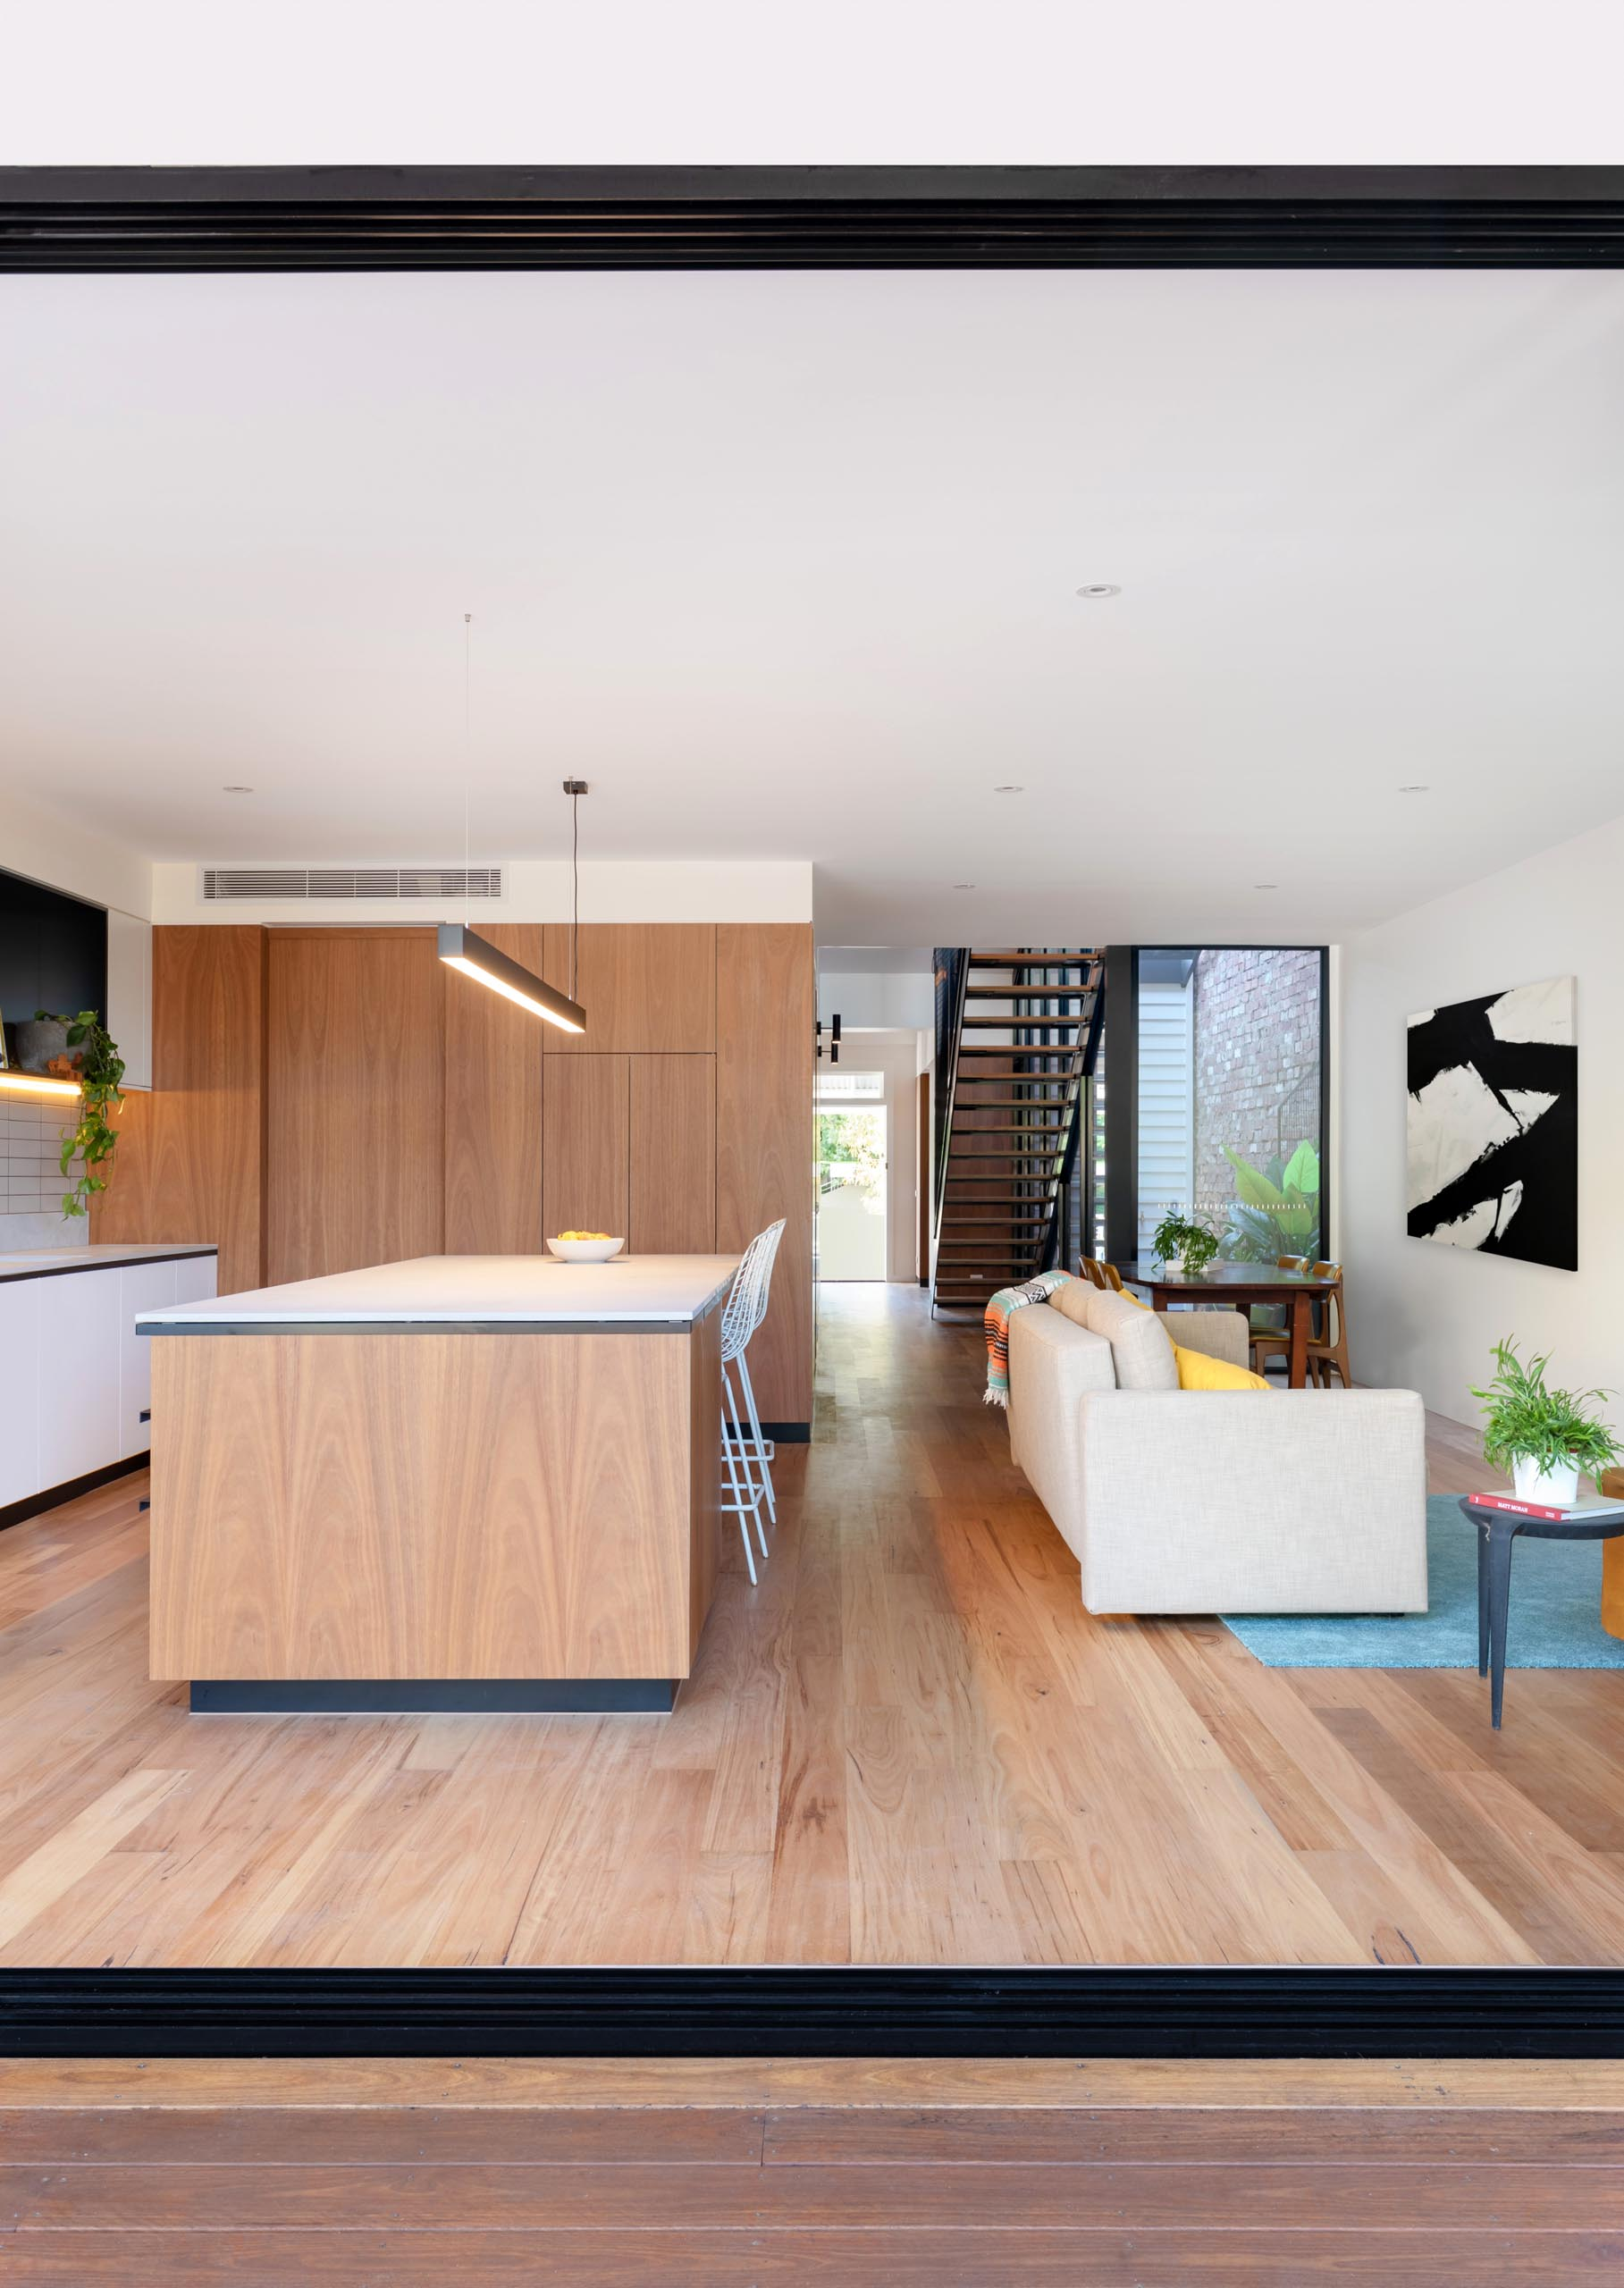 A modern open plan interior with wood flooring.